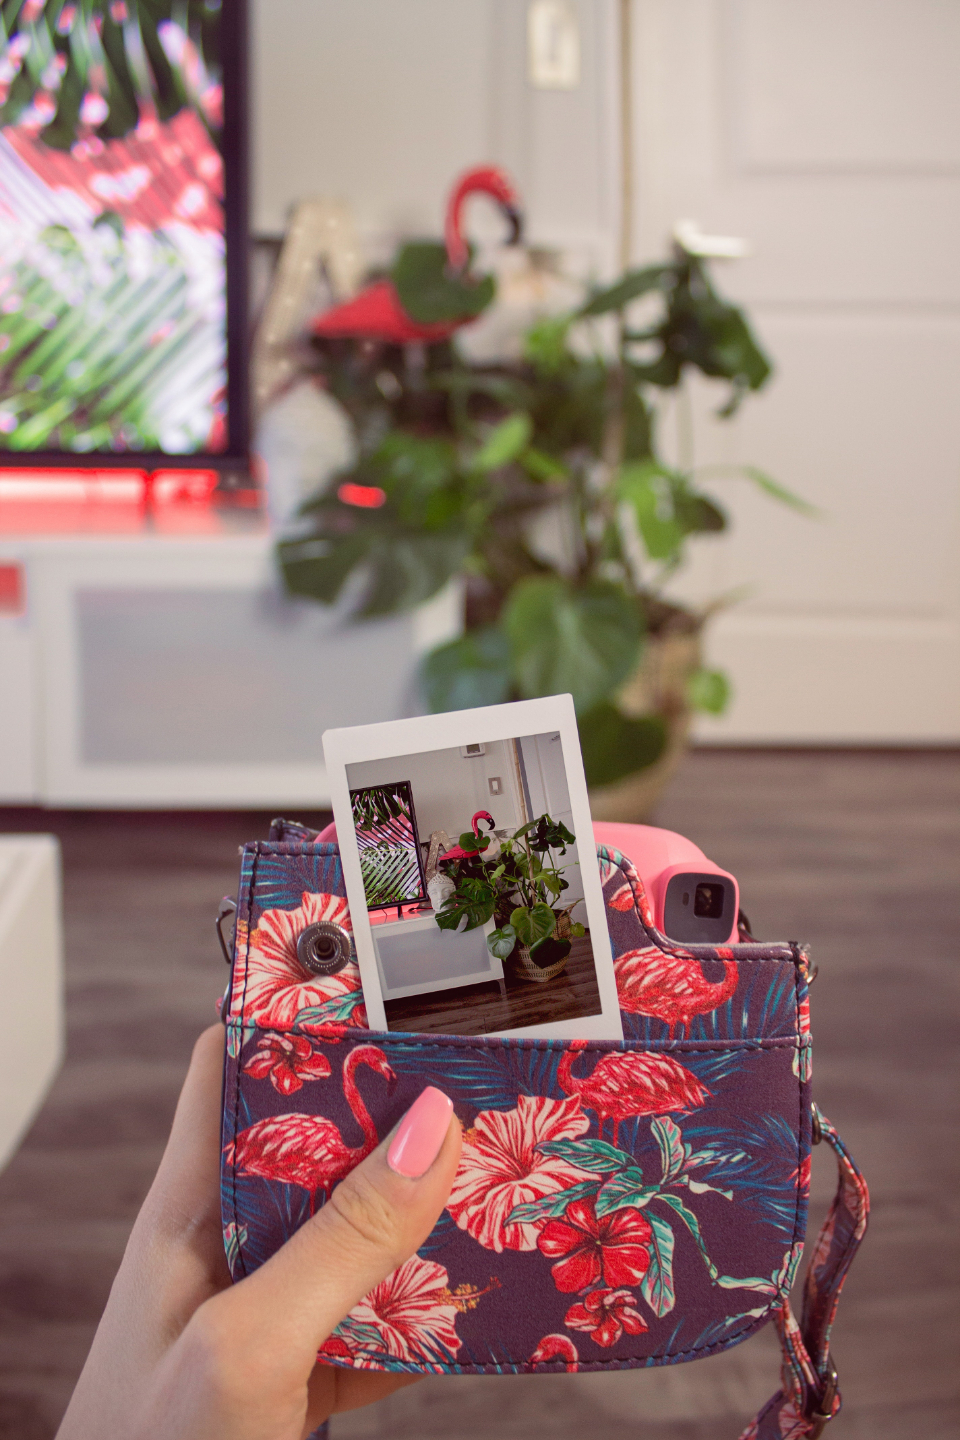 polaroid photo interior design pink television purse house home plant wood floor